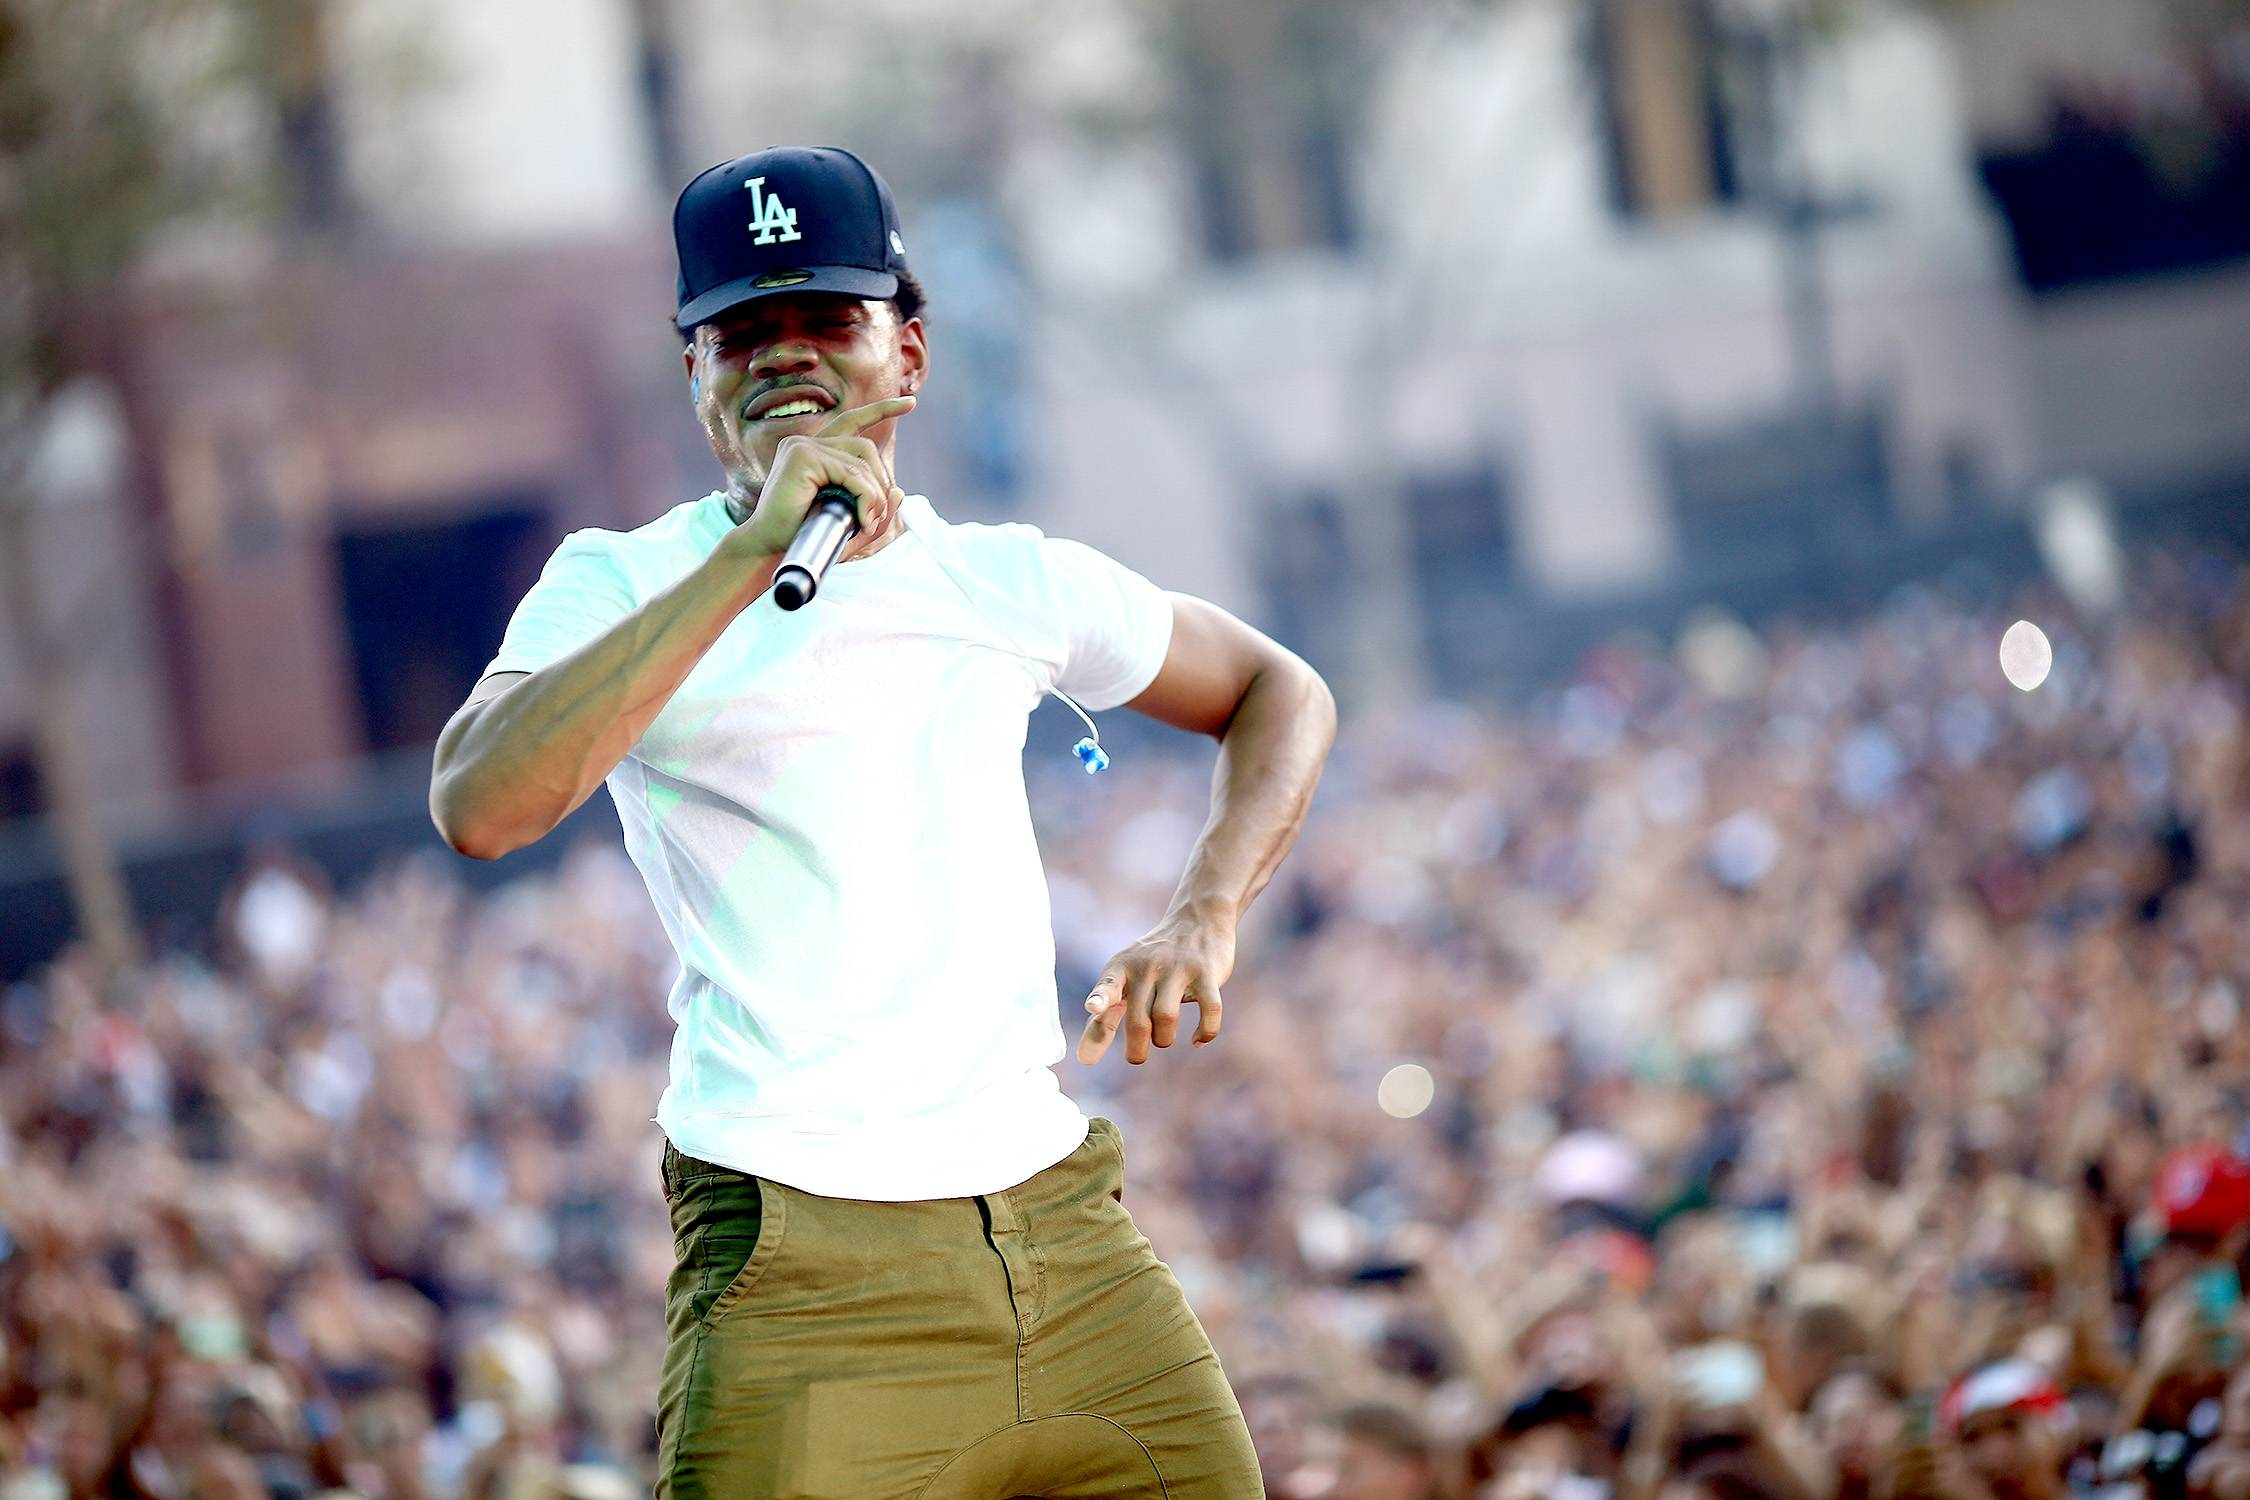 Chance the Rapper - Chance recieved a co-sign that came with some acclaim when Community star Donald Glover (a.k.a. Childish Gambino) co-signed his work.   (Photo: Christopher Polk/Getty Images for Anheuser-Busch)